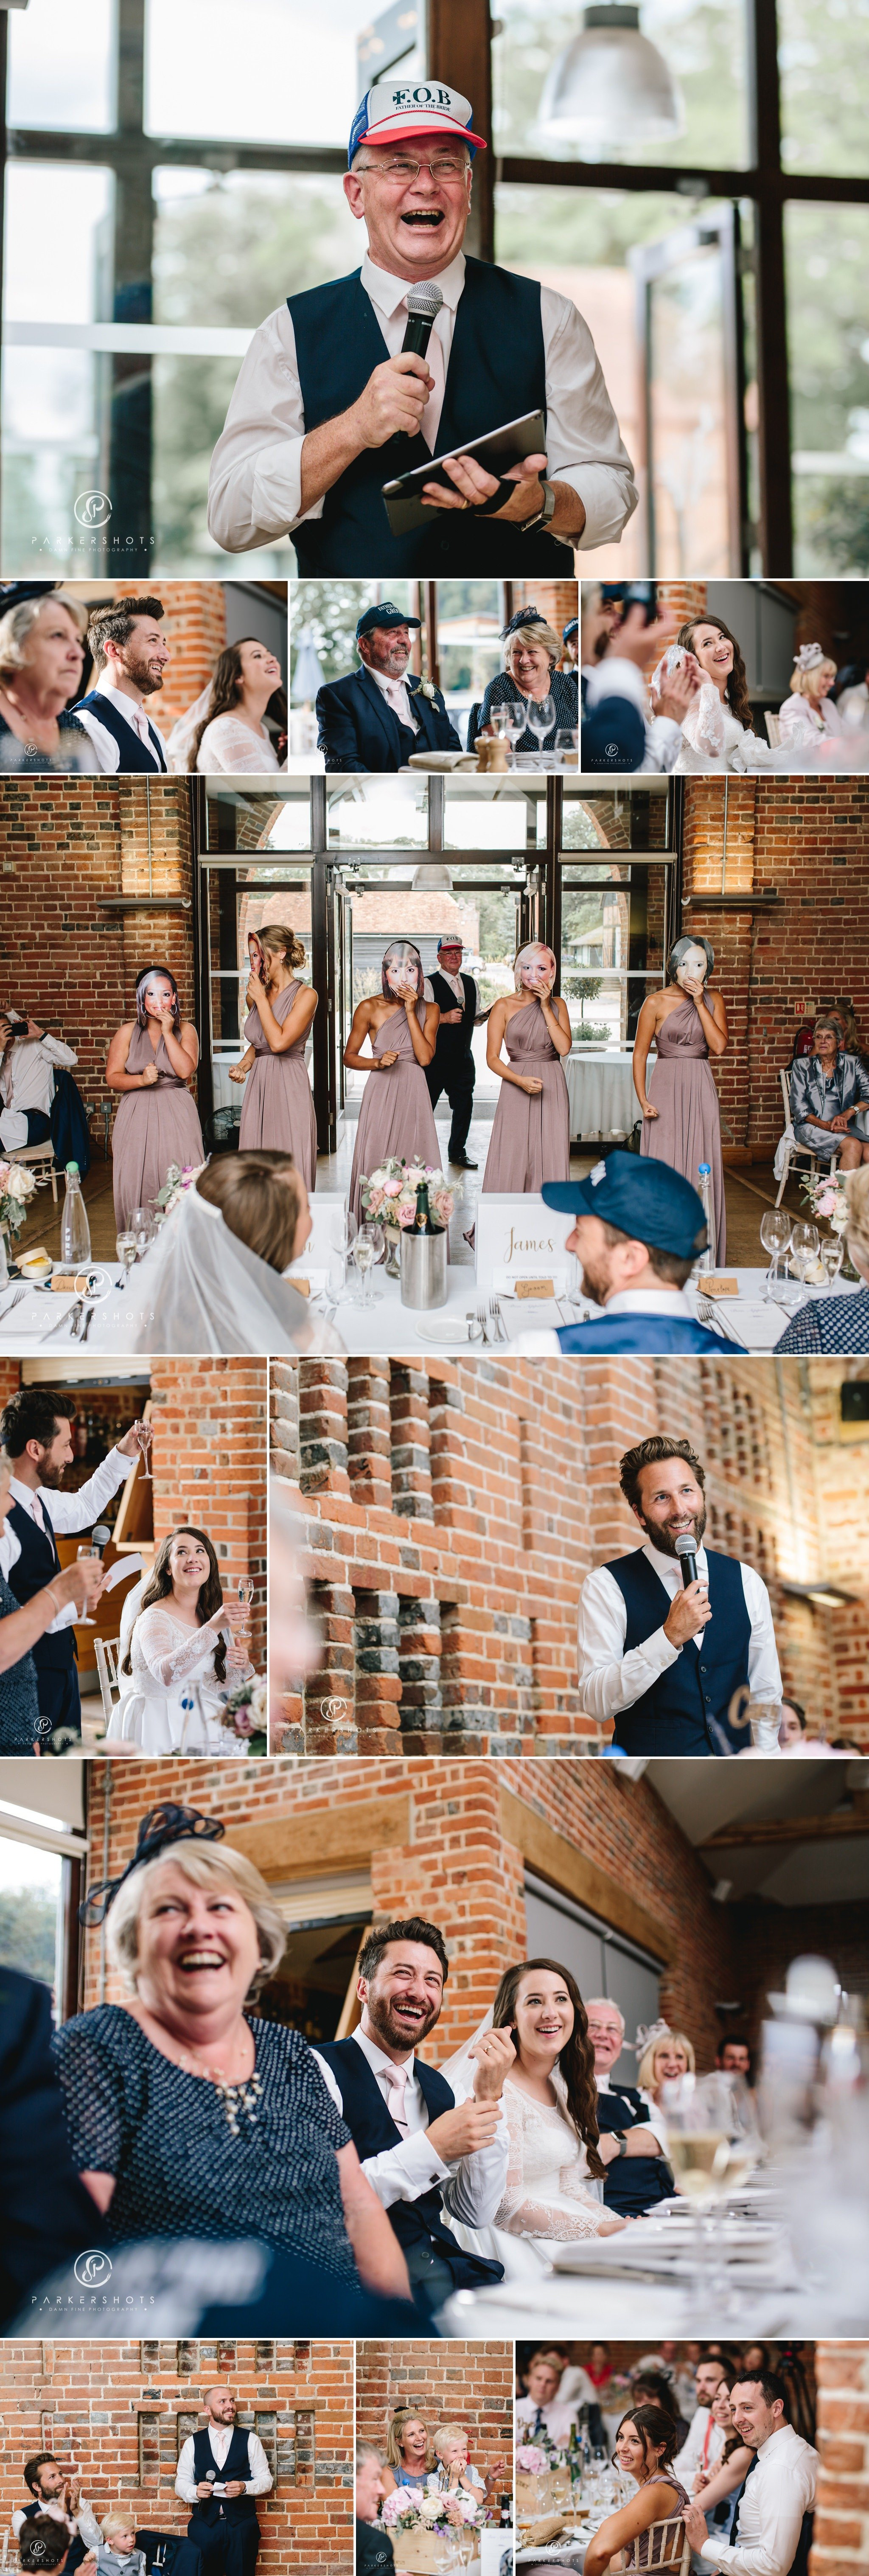 wedding speeches by Wasing Park Wedding Photographer